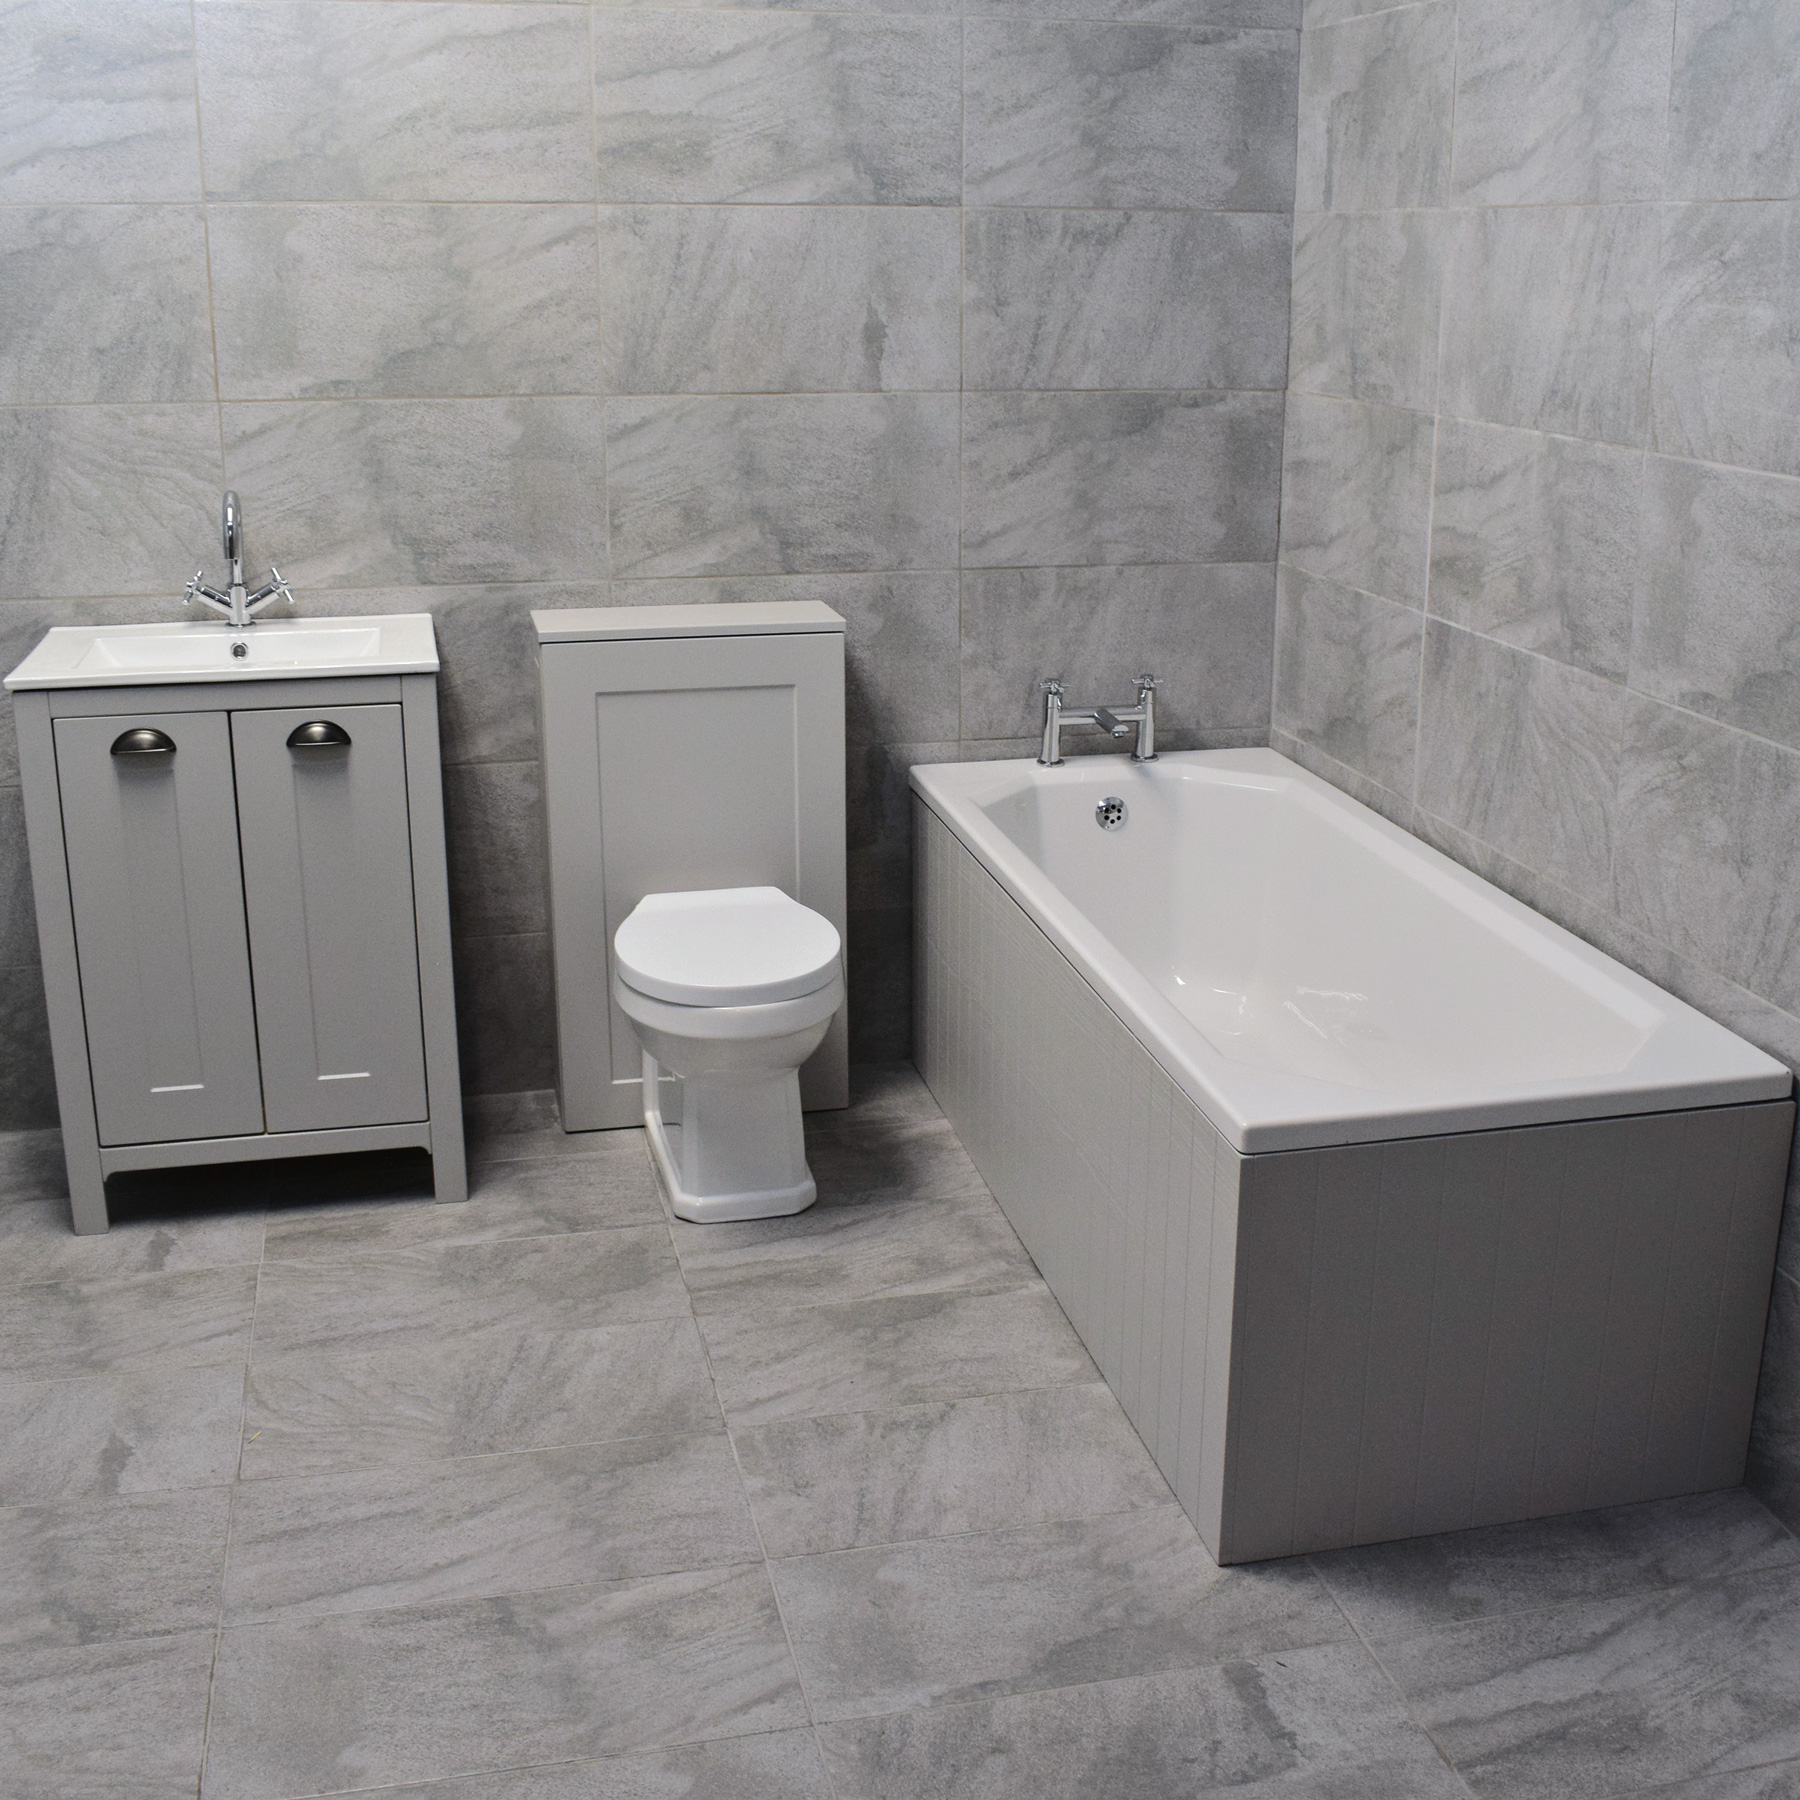 Details About Der Light Grey Bathroom Suite Vanity Sink Unit Toilet Bath pertaining to size 1800 X 1800